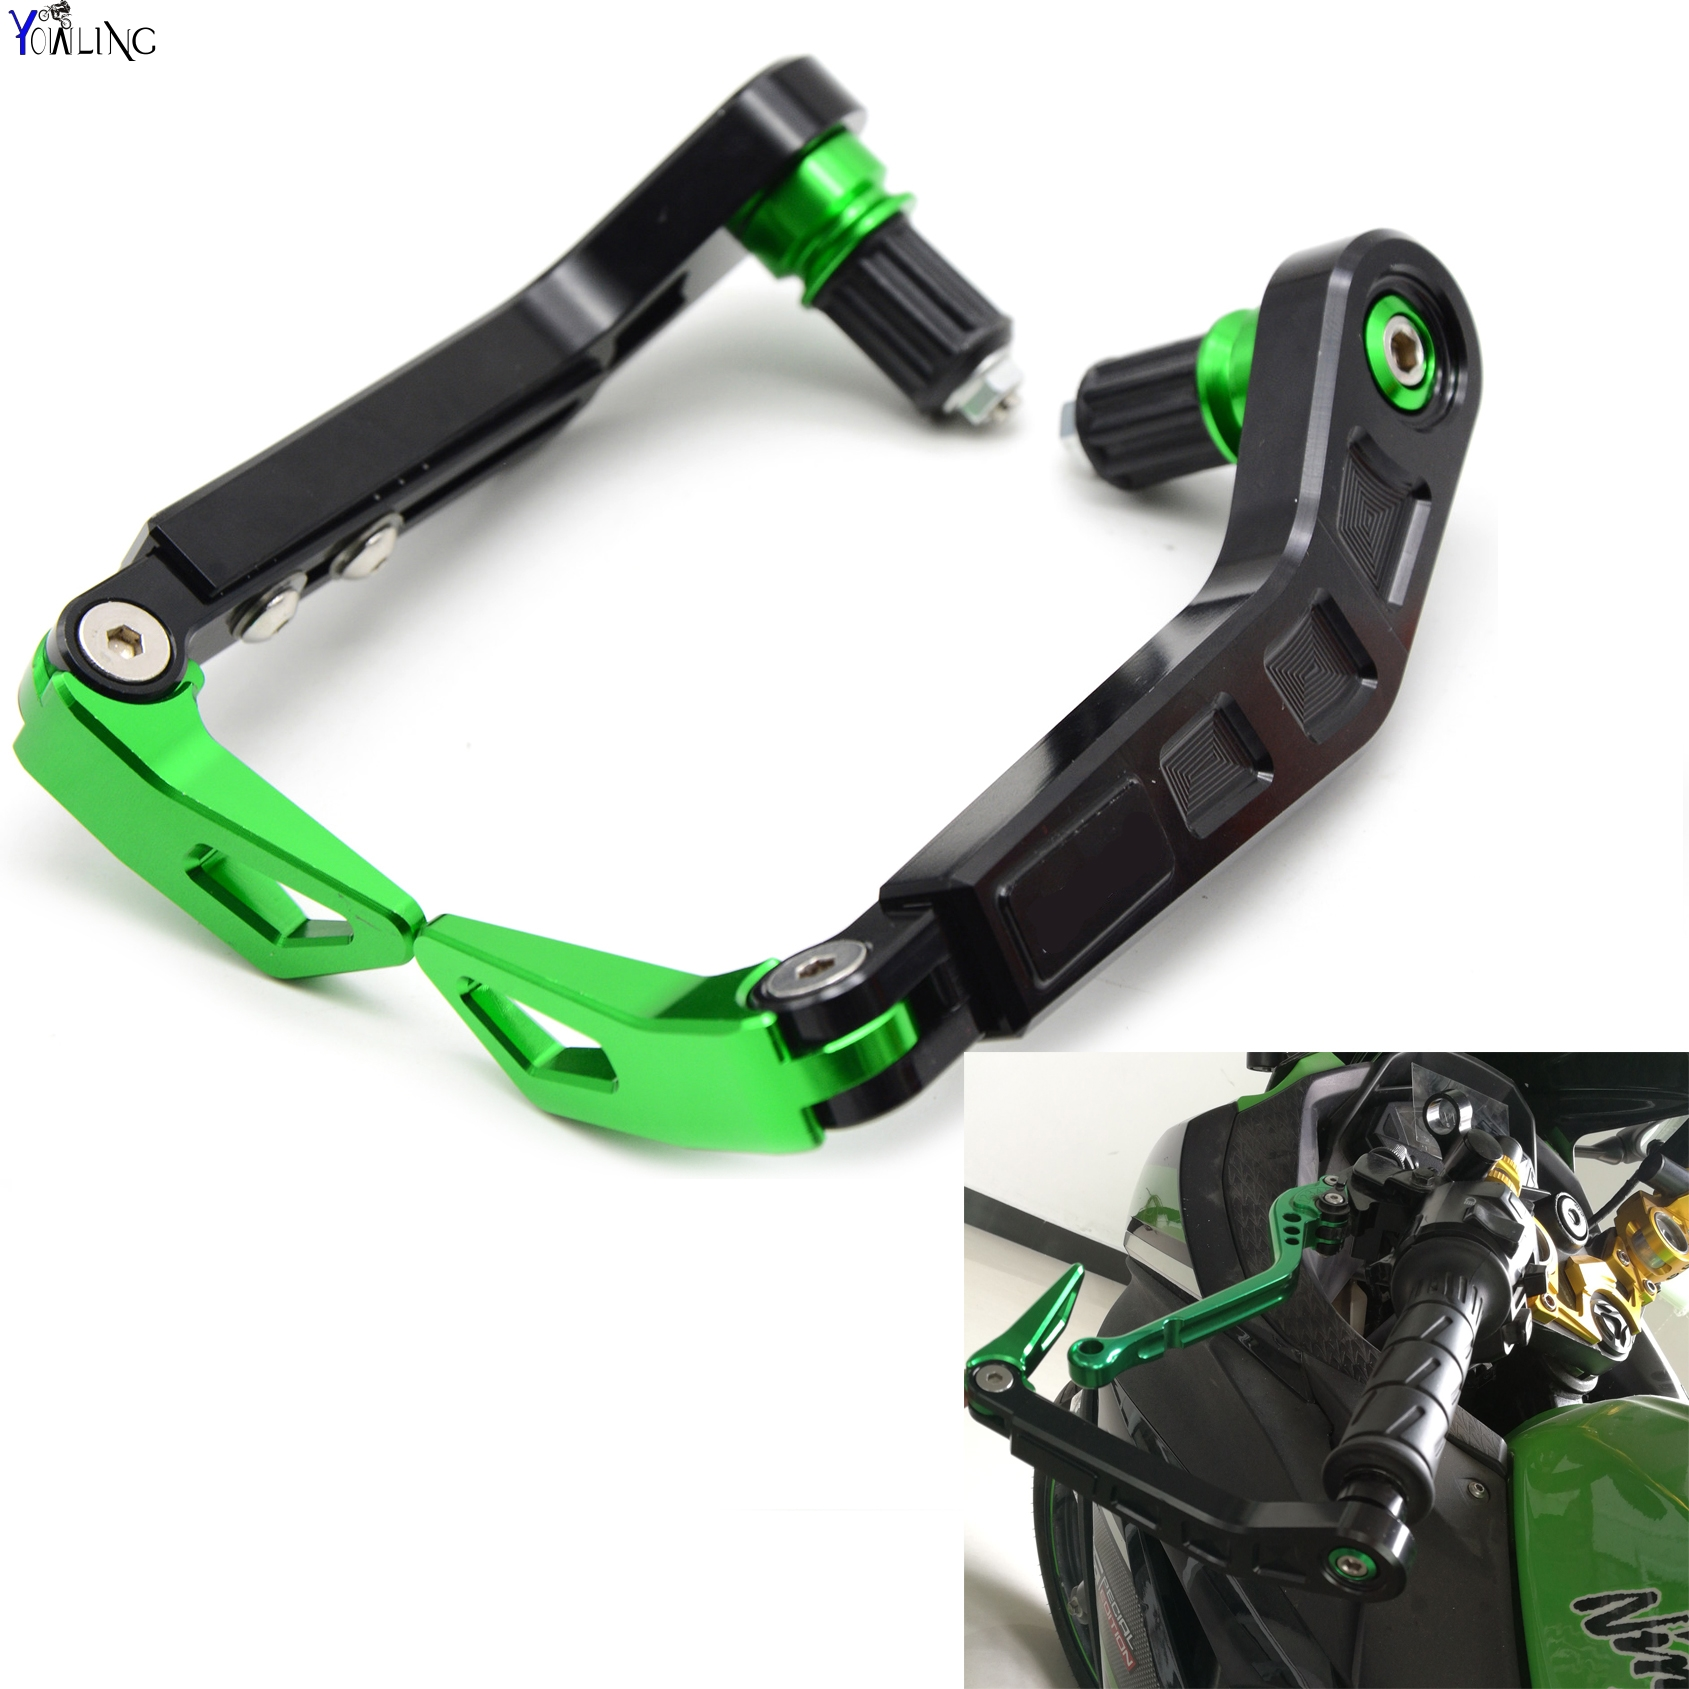 Universal 7/822mm Motorcycle Handlebar Brake Clutch Lever Protect Guard for Kawasaki VERSYS 1000 VULCAN/S 650cc Z800 Z 1000SX for 22mm 7 8 handlebar motorcycle dirt bike universal stunt clutch lever assembly cnc aluminum